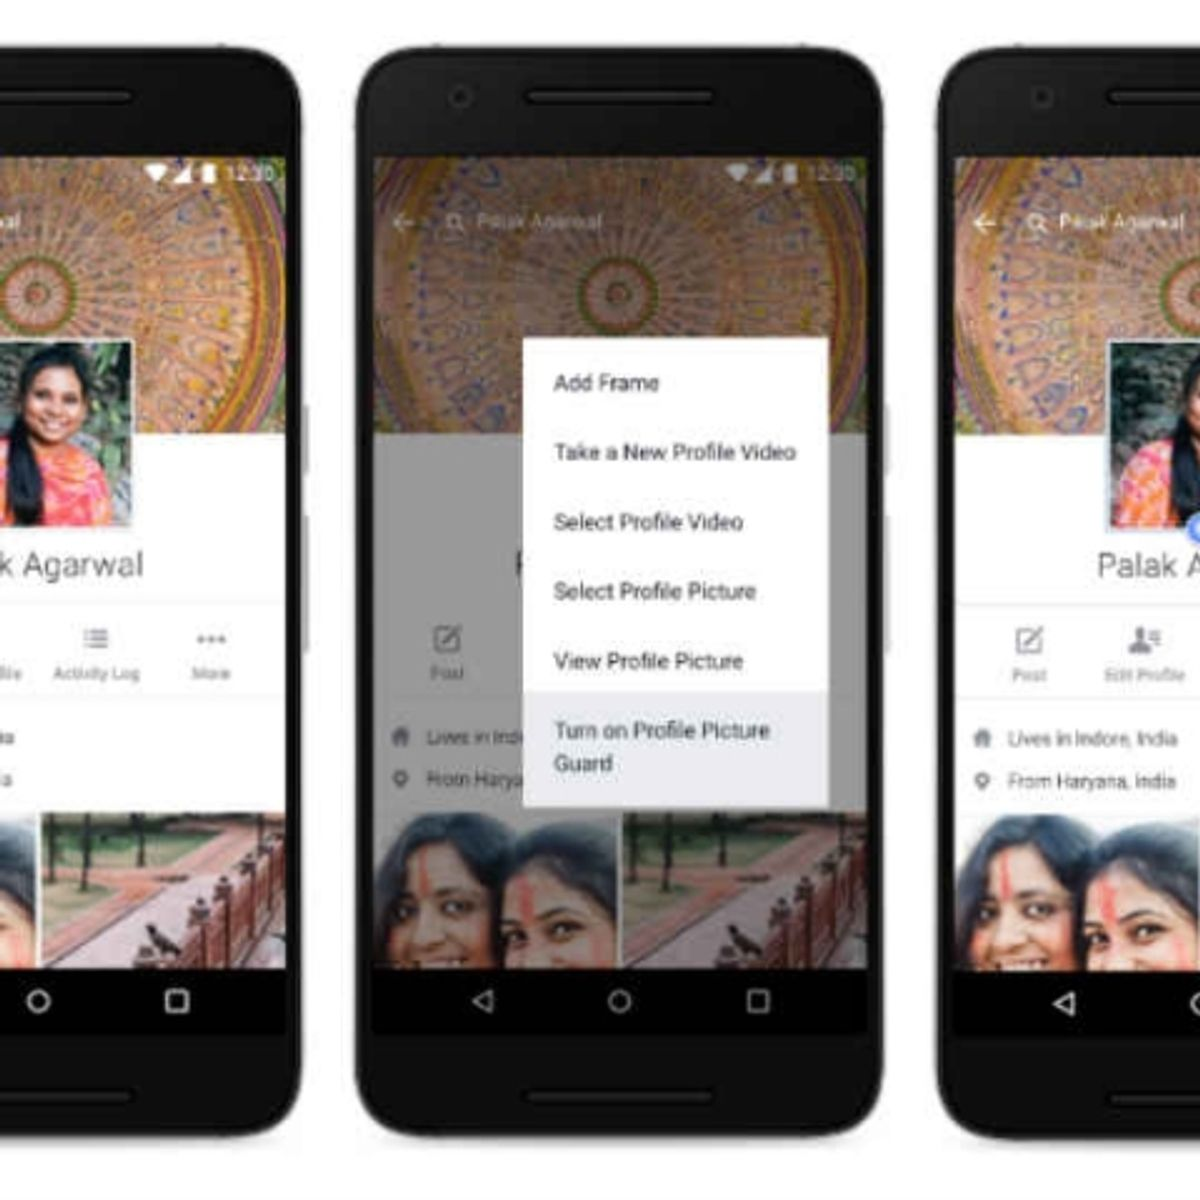 Facebook is giving Indian users more control over their